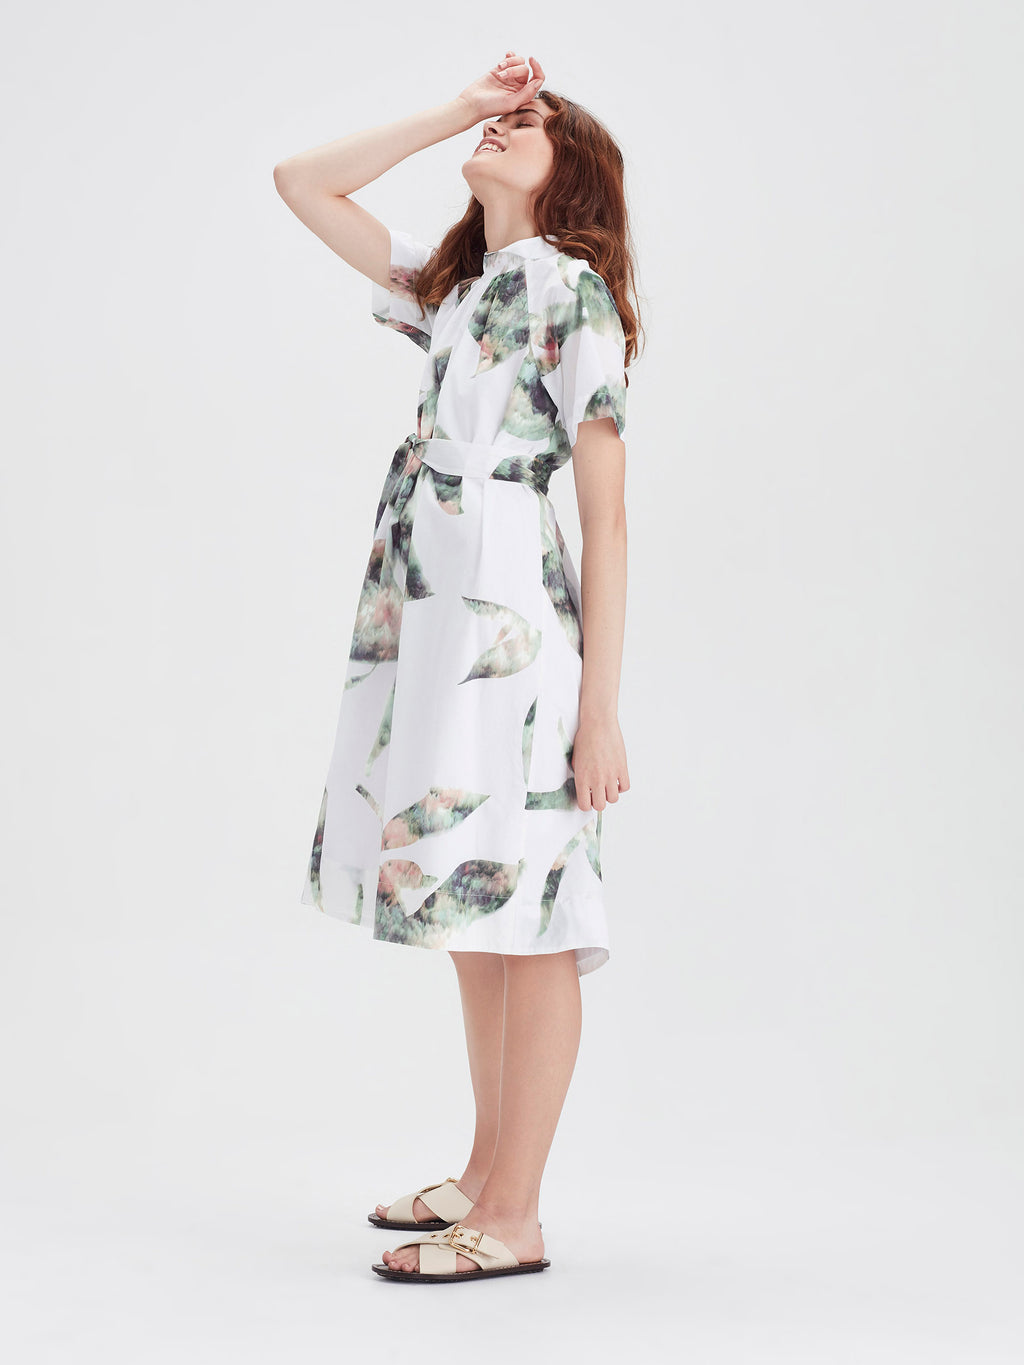 Aria Dress (Lotus Collage Cotton) White Lotus